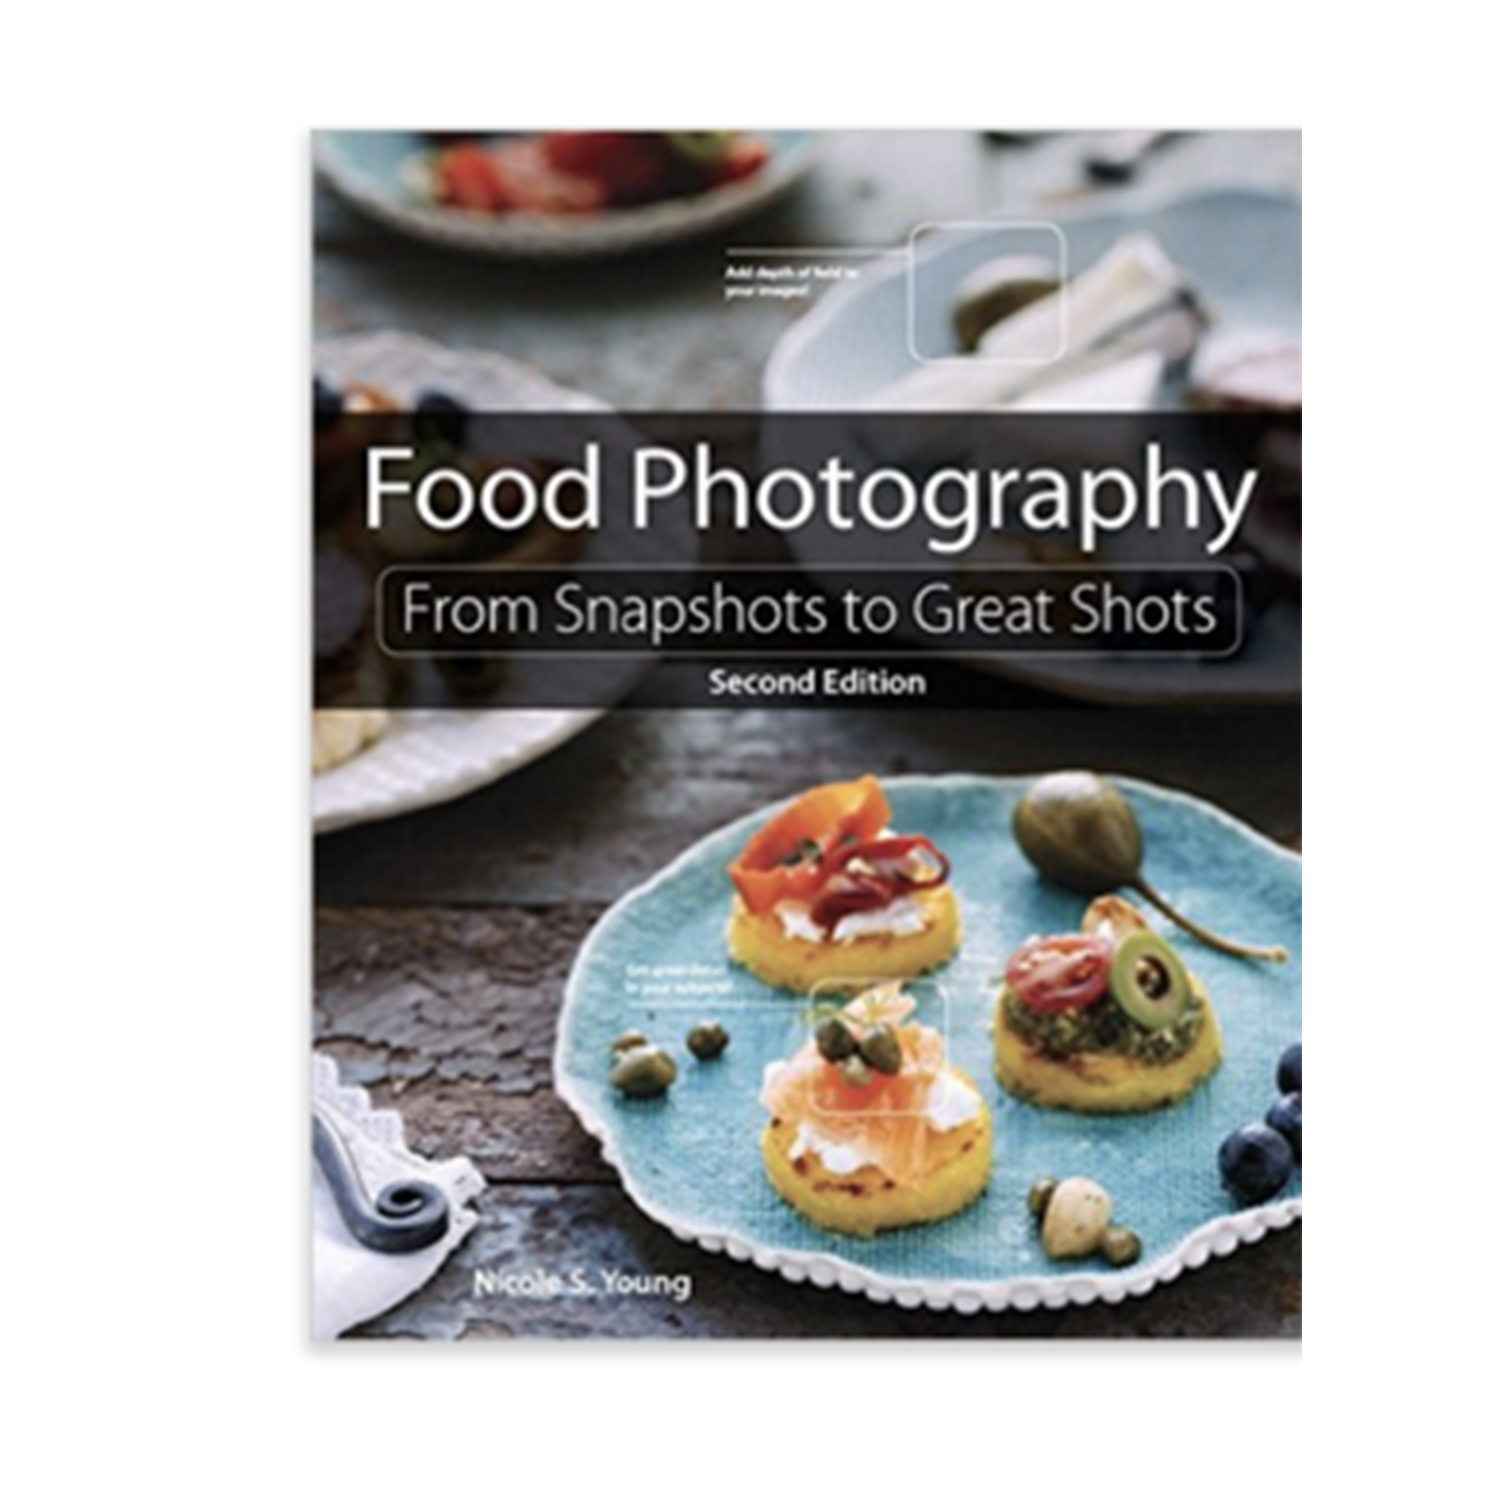 Food Photography: From Snapshots to Great Shots (2nd Edition) 2nd Edition